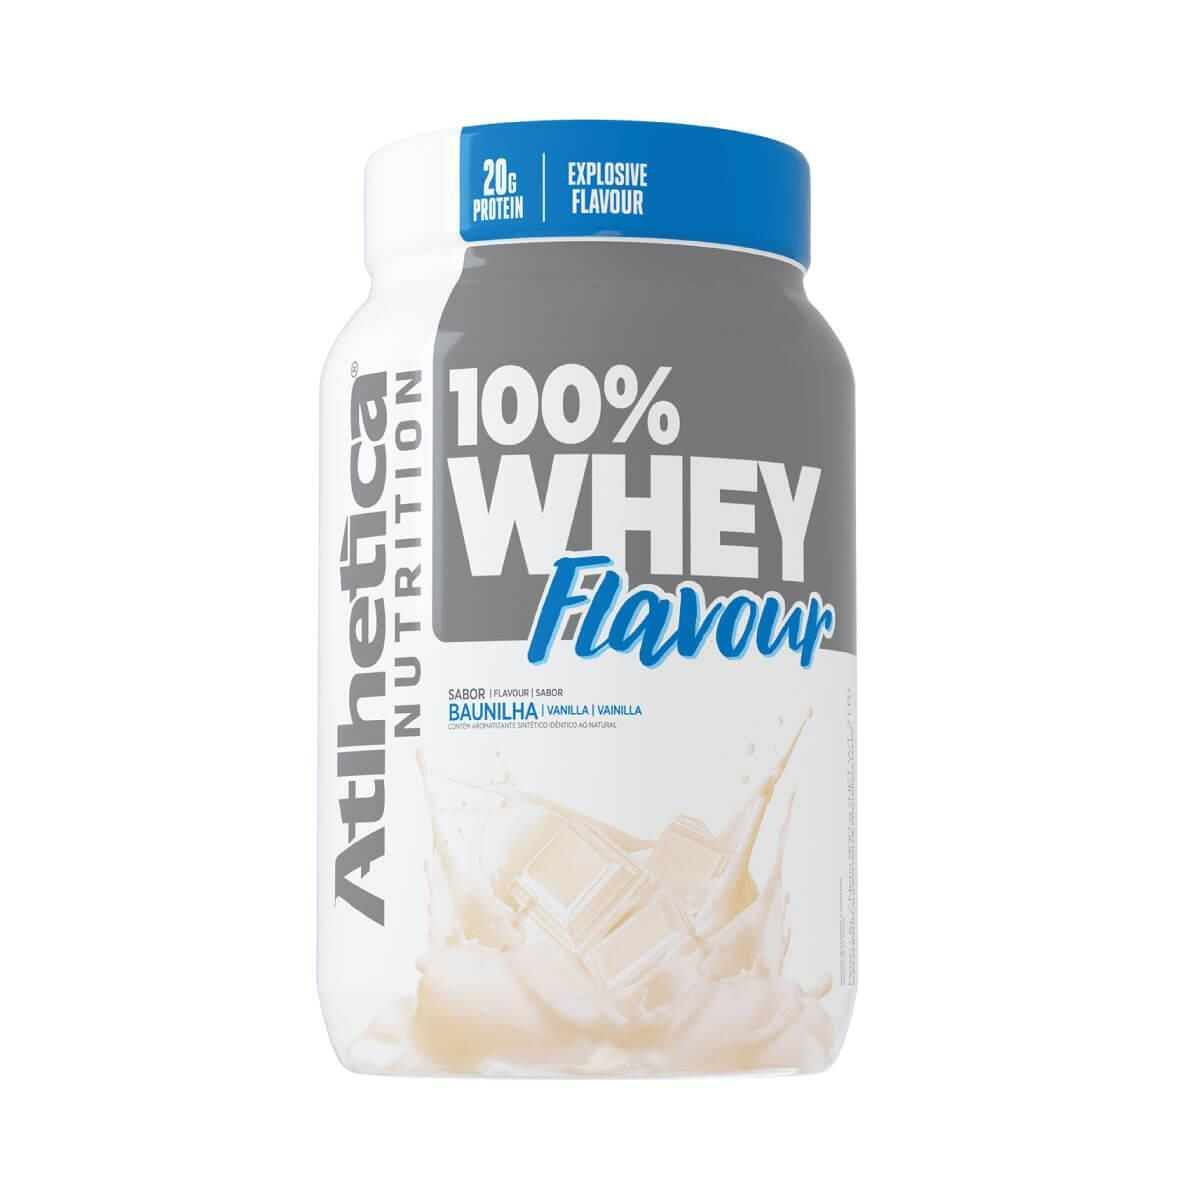 100% WHEY FLAVOUR 900g - Atlhetica Nutrition